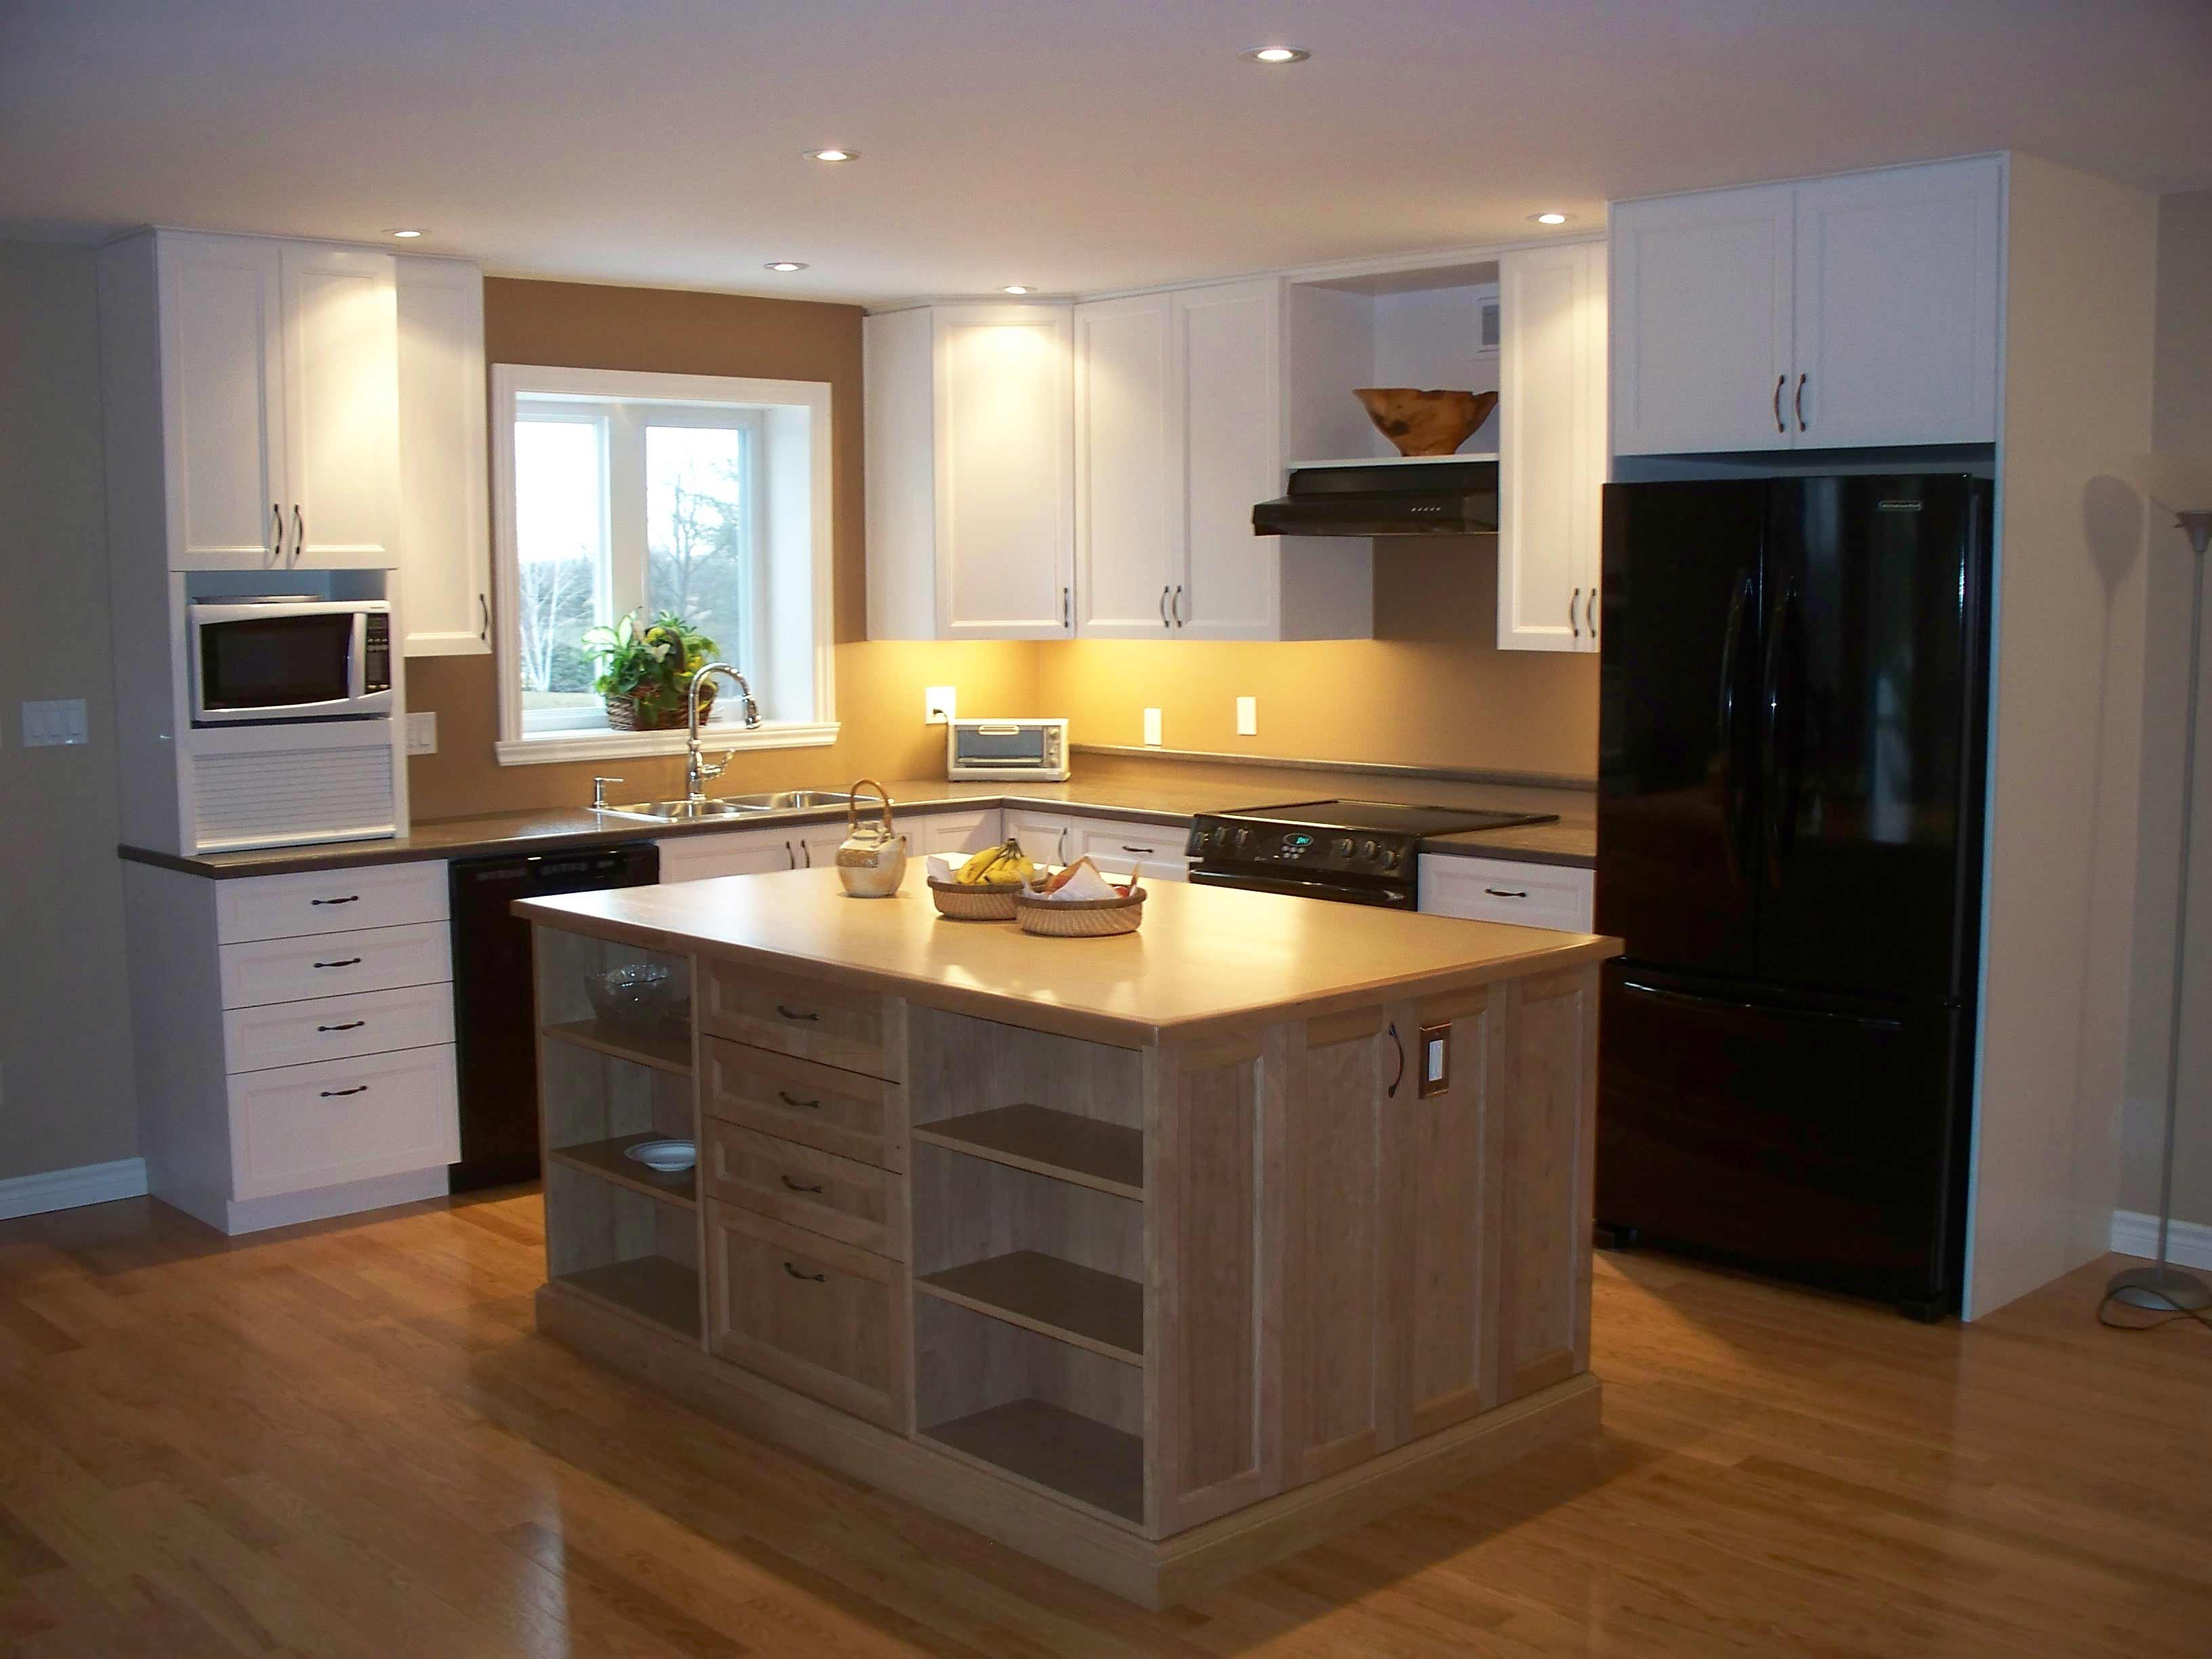 Kitchen Cabinets Toronto And Amazing Kitchen Cabinet Christmas Decor